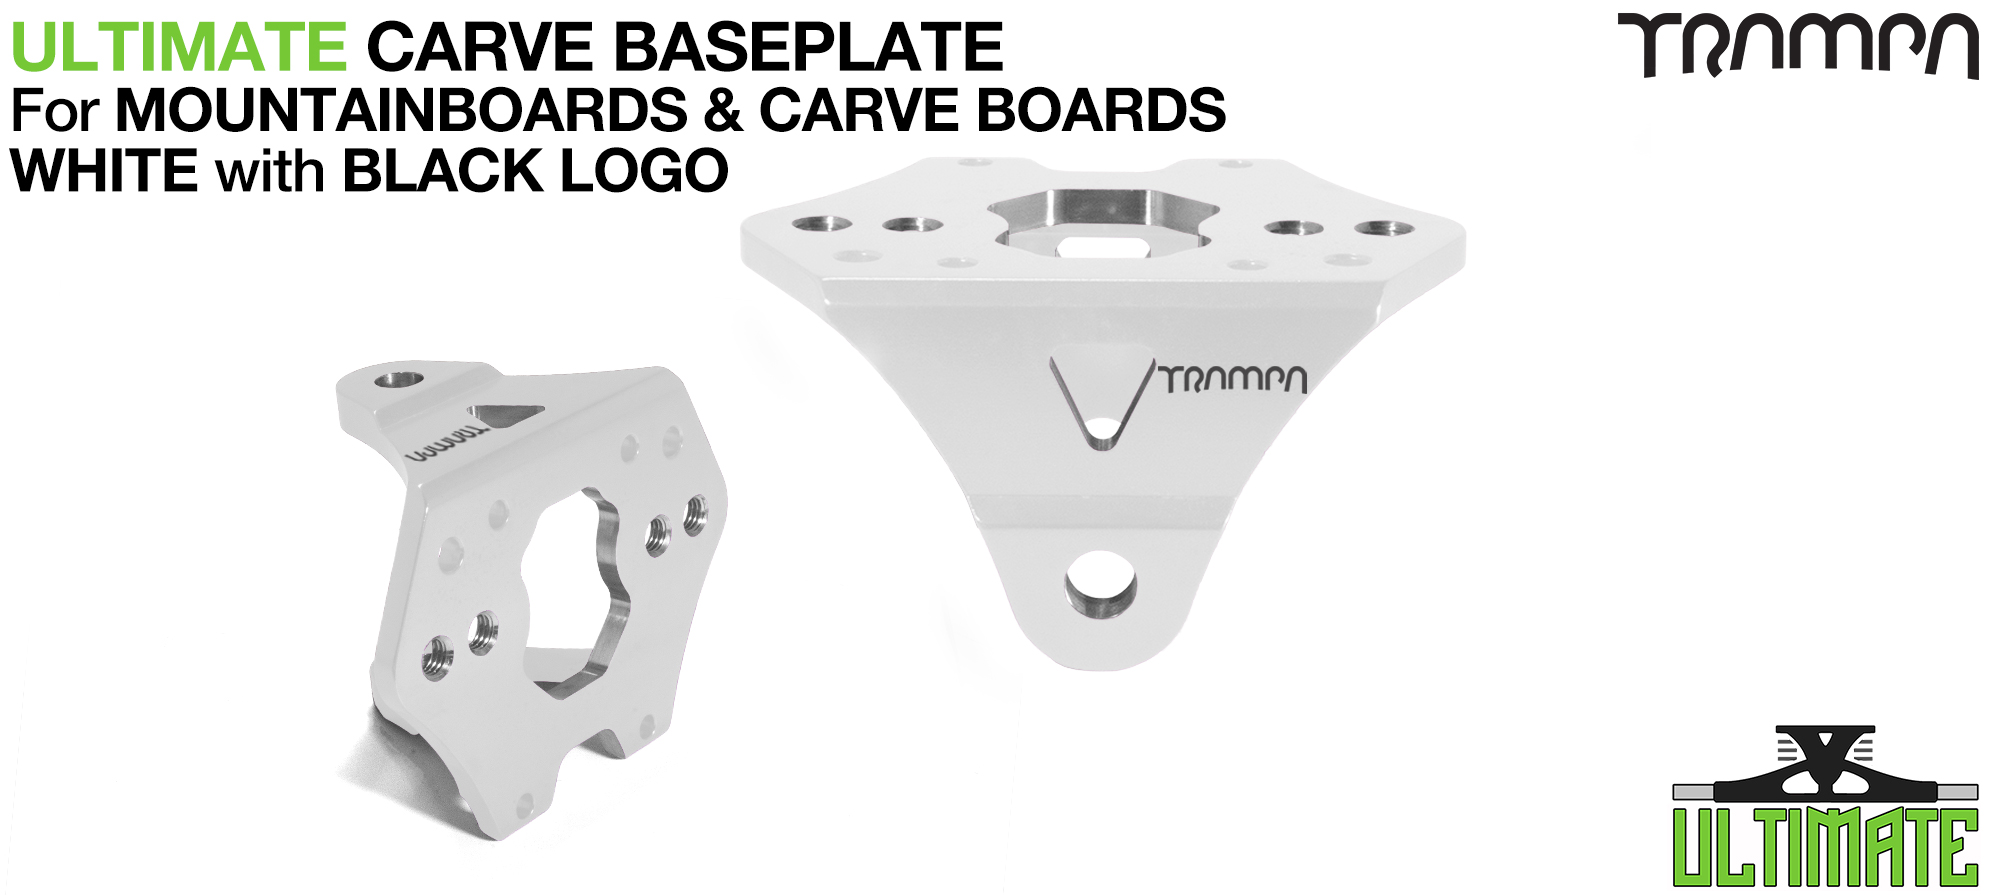 Carveboard ULTIMATE Baseplate WHITE - T6 Aluminum Powder coated & CNC lightened - Black logo